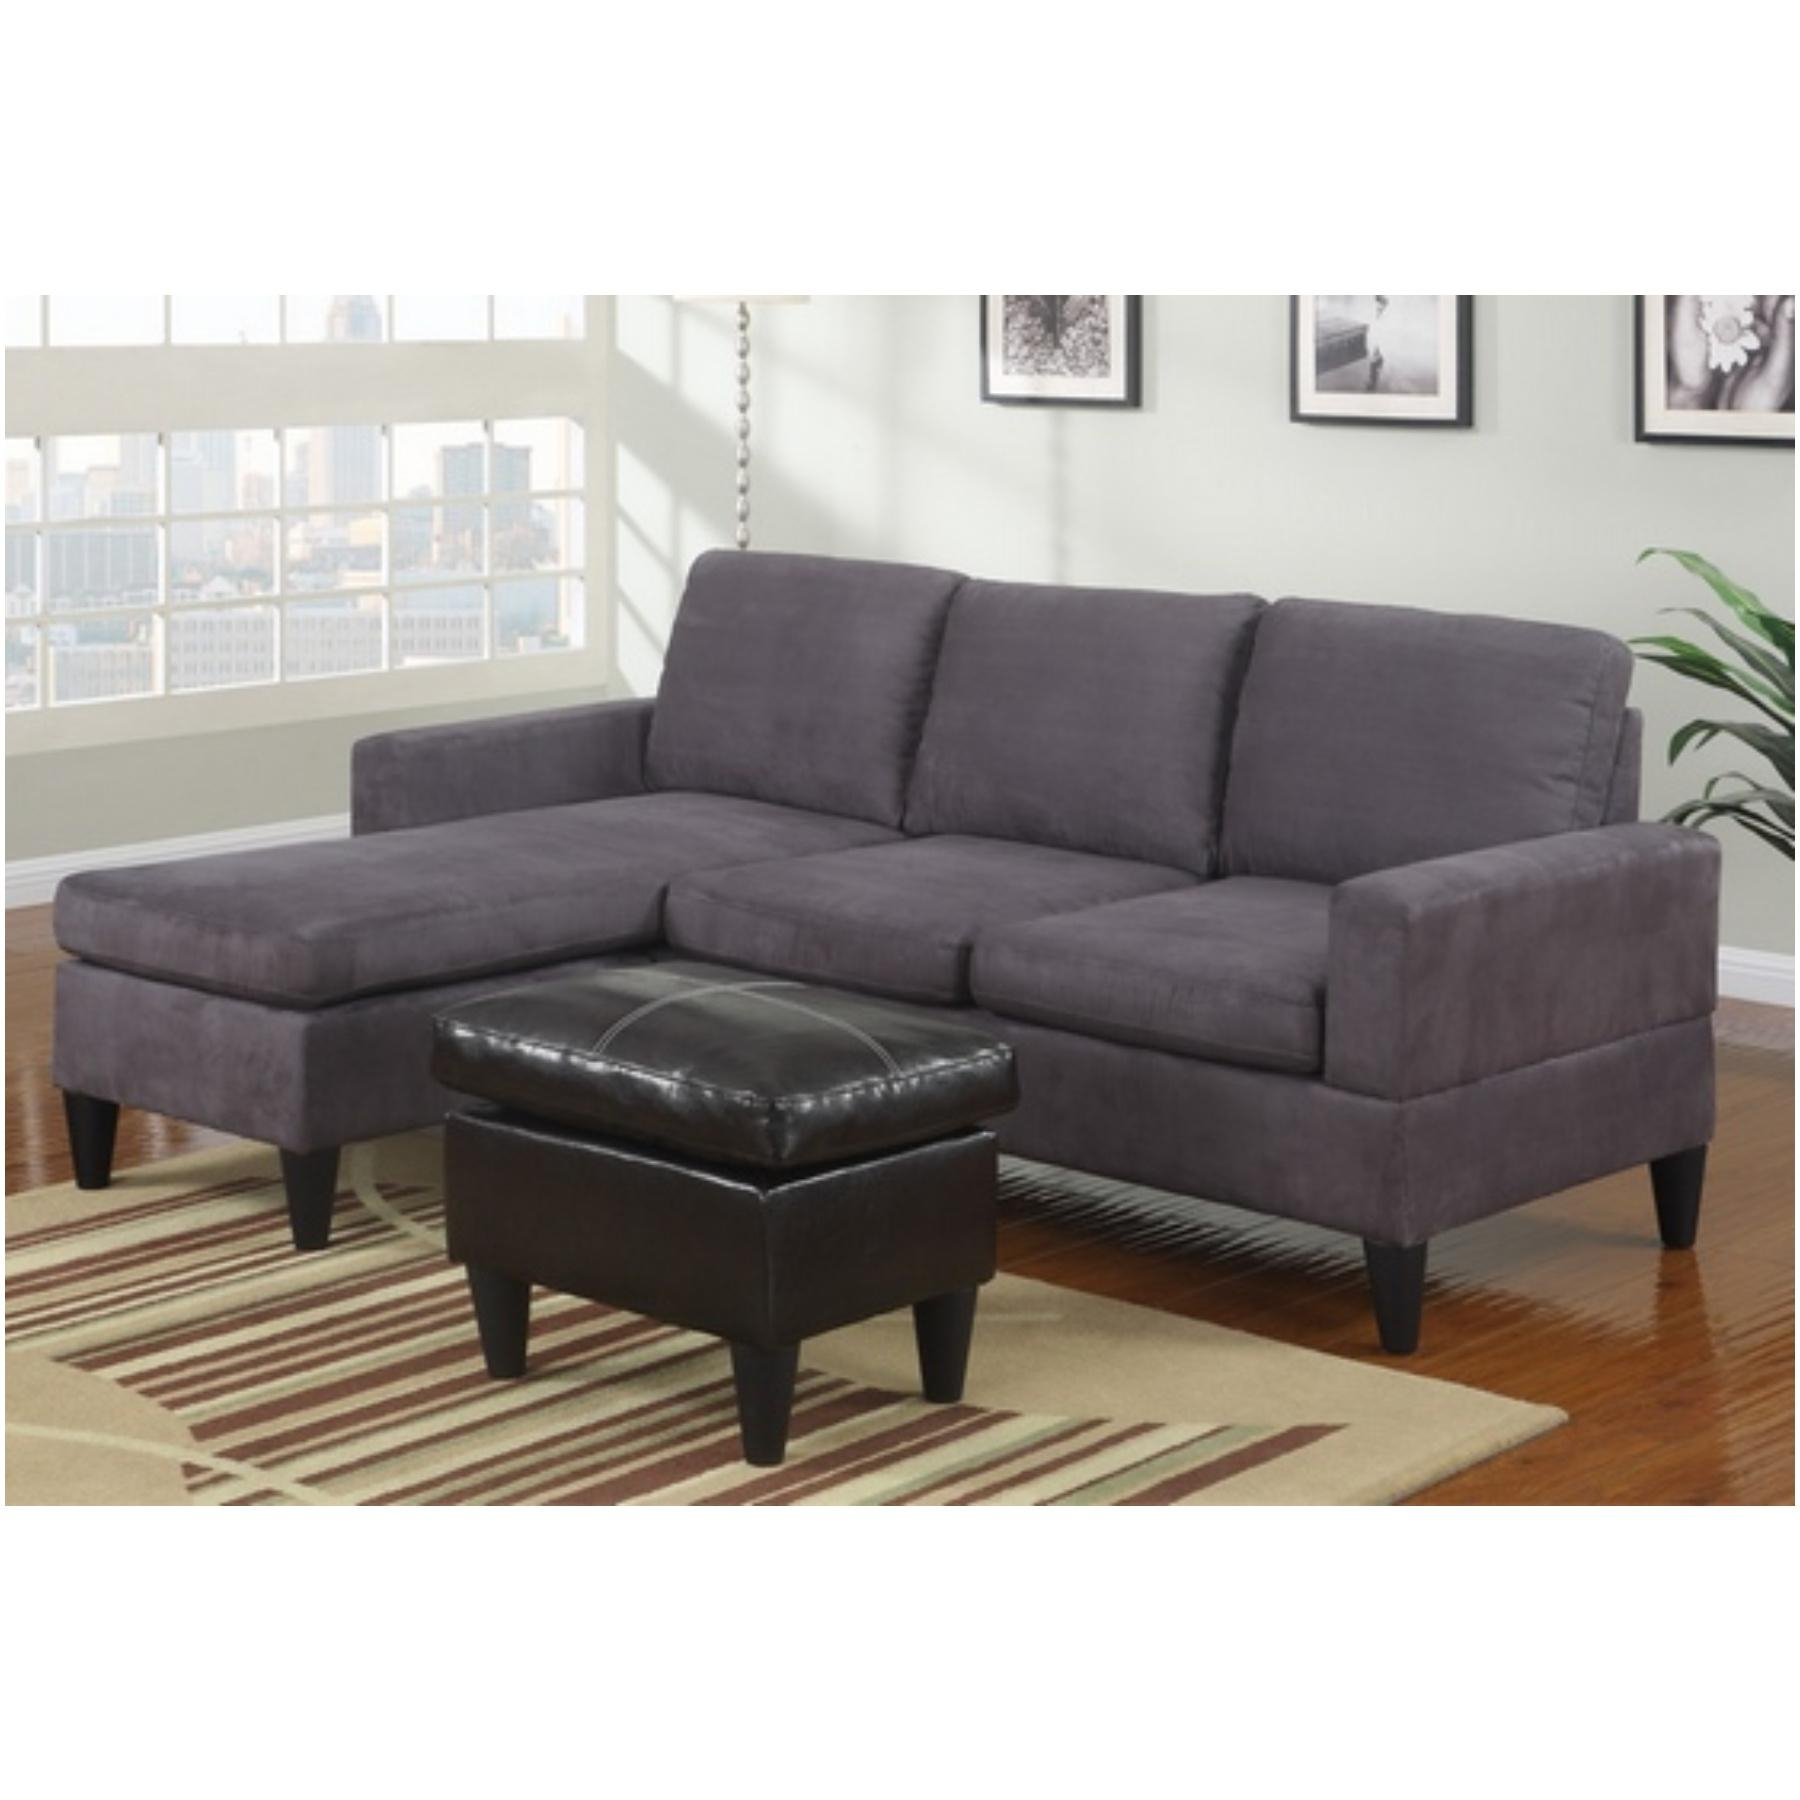 15 choices of apartment sectional sofa with chaise sofa